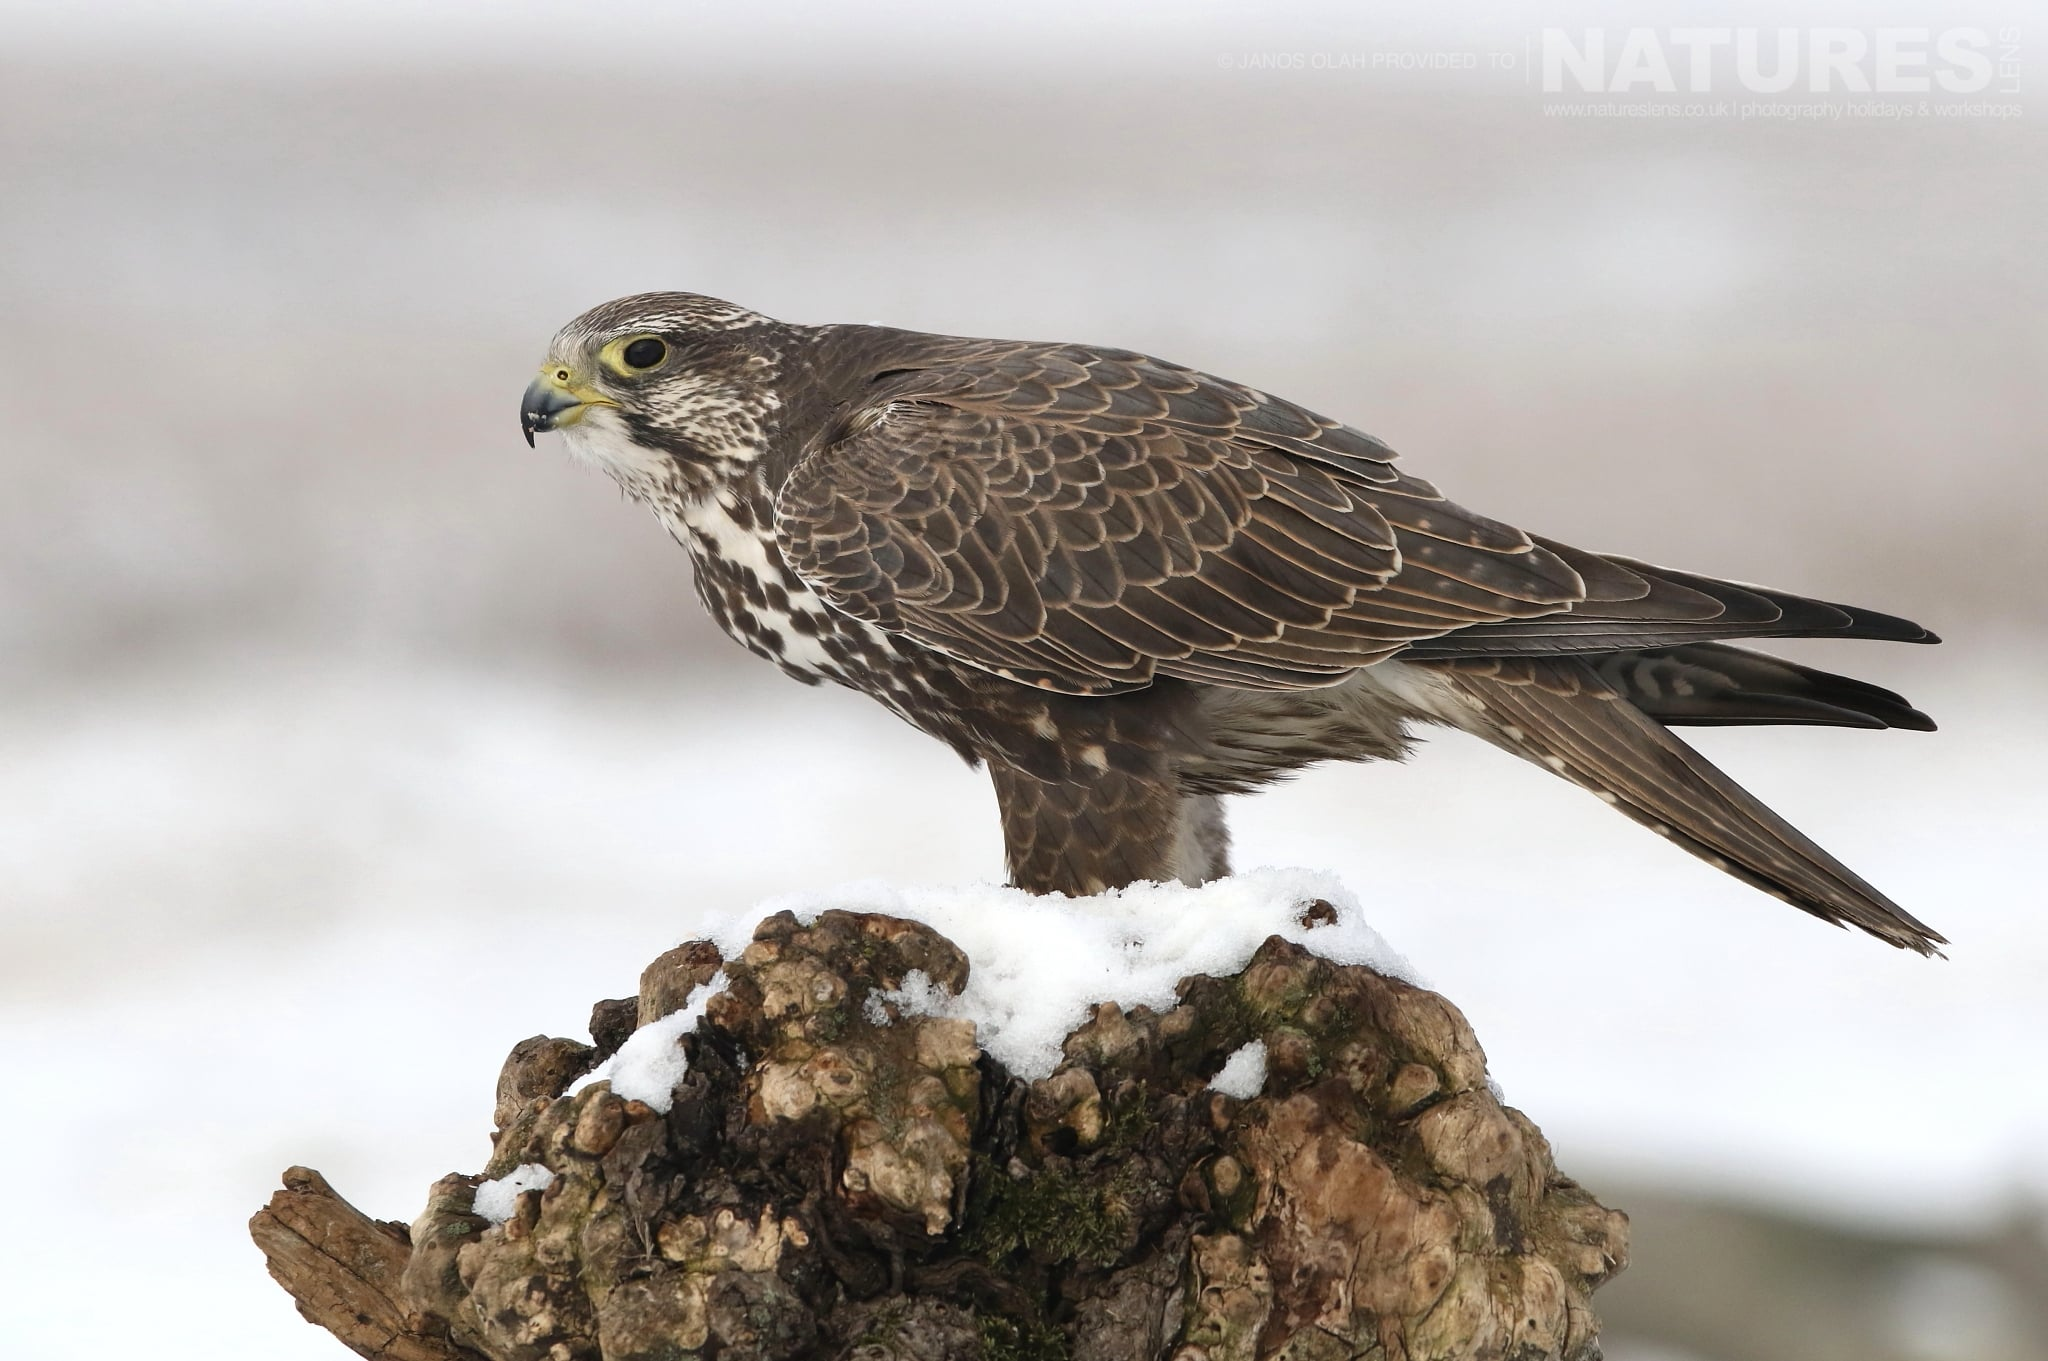 A beautiful Saker falcon on snow photographed at the locations for the Winter Eagles of the Hortobagy photography holiday